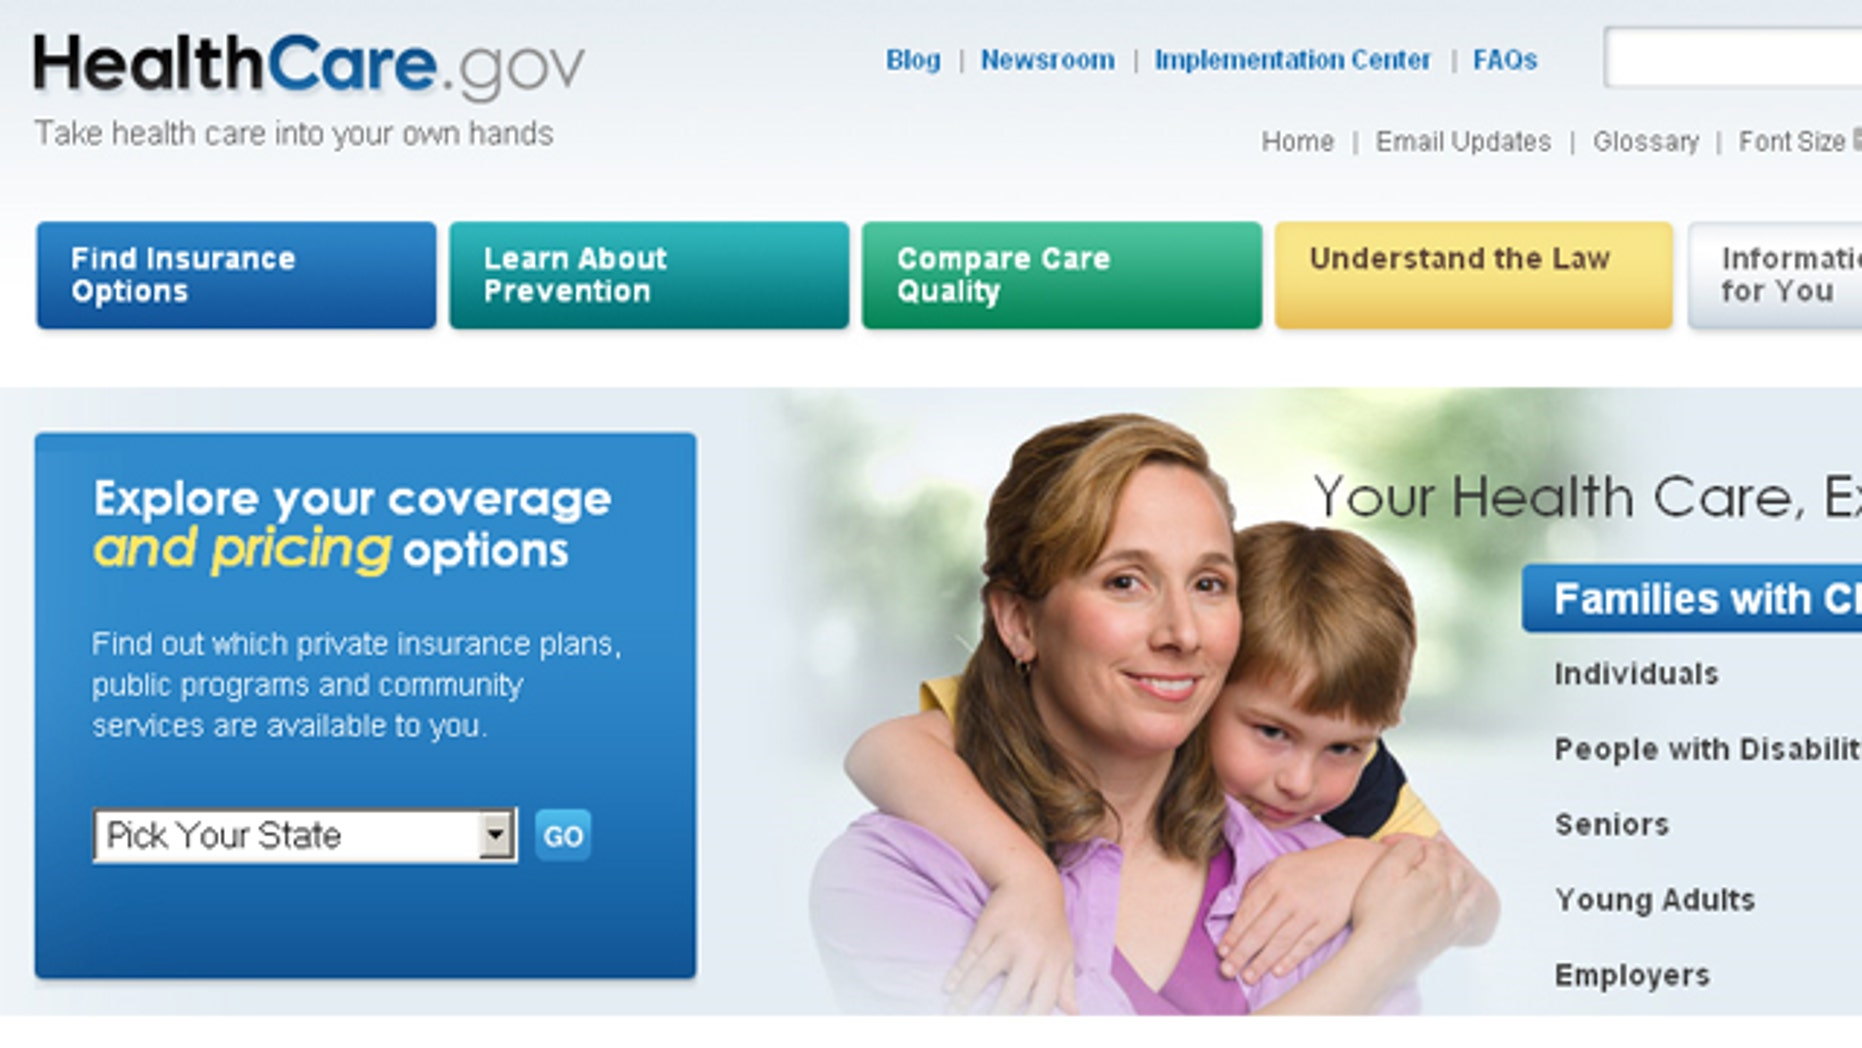 Shown here is the Healthcare.gov website.